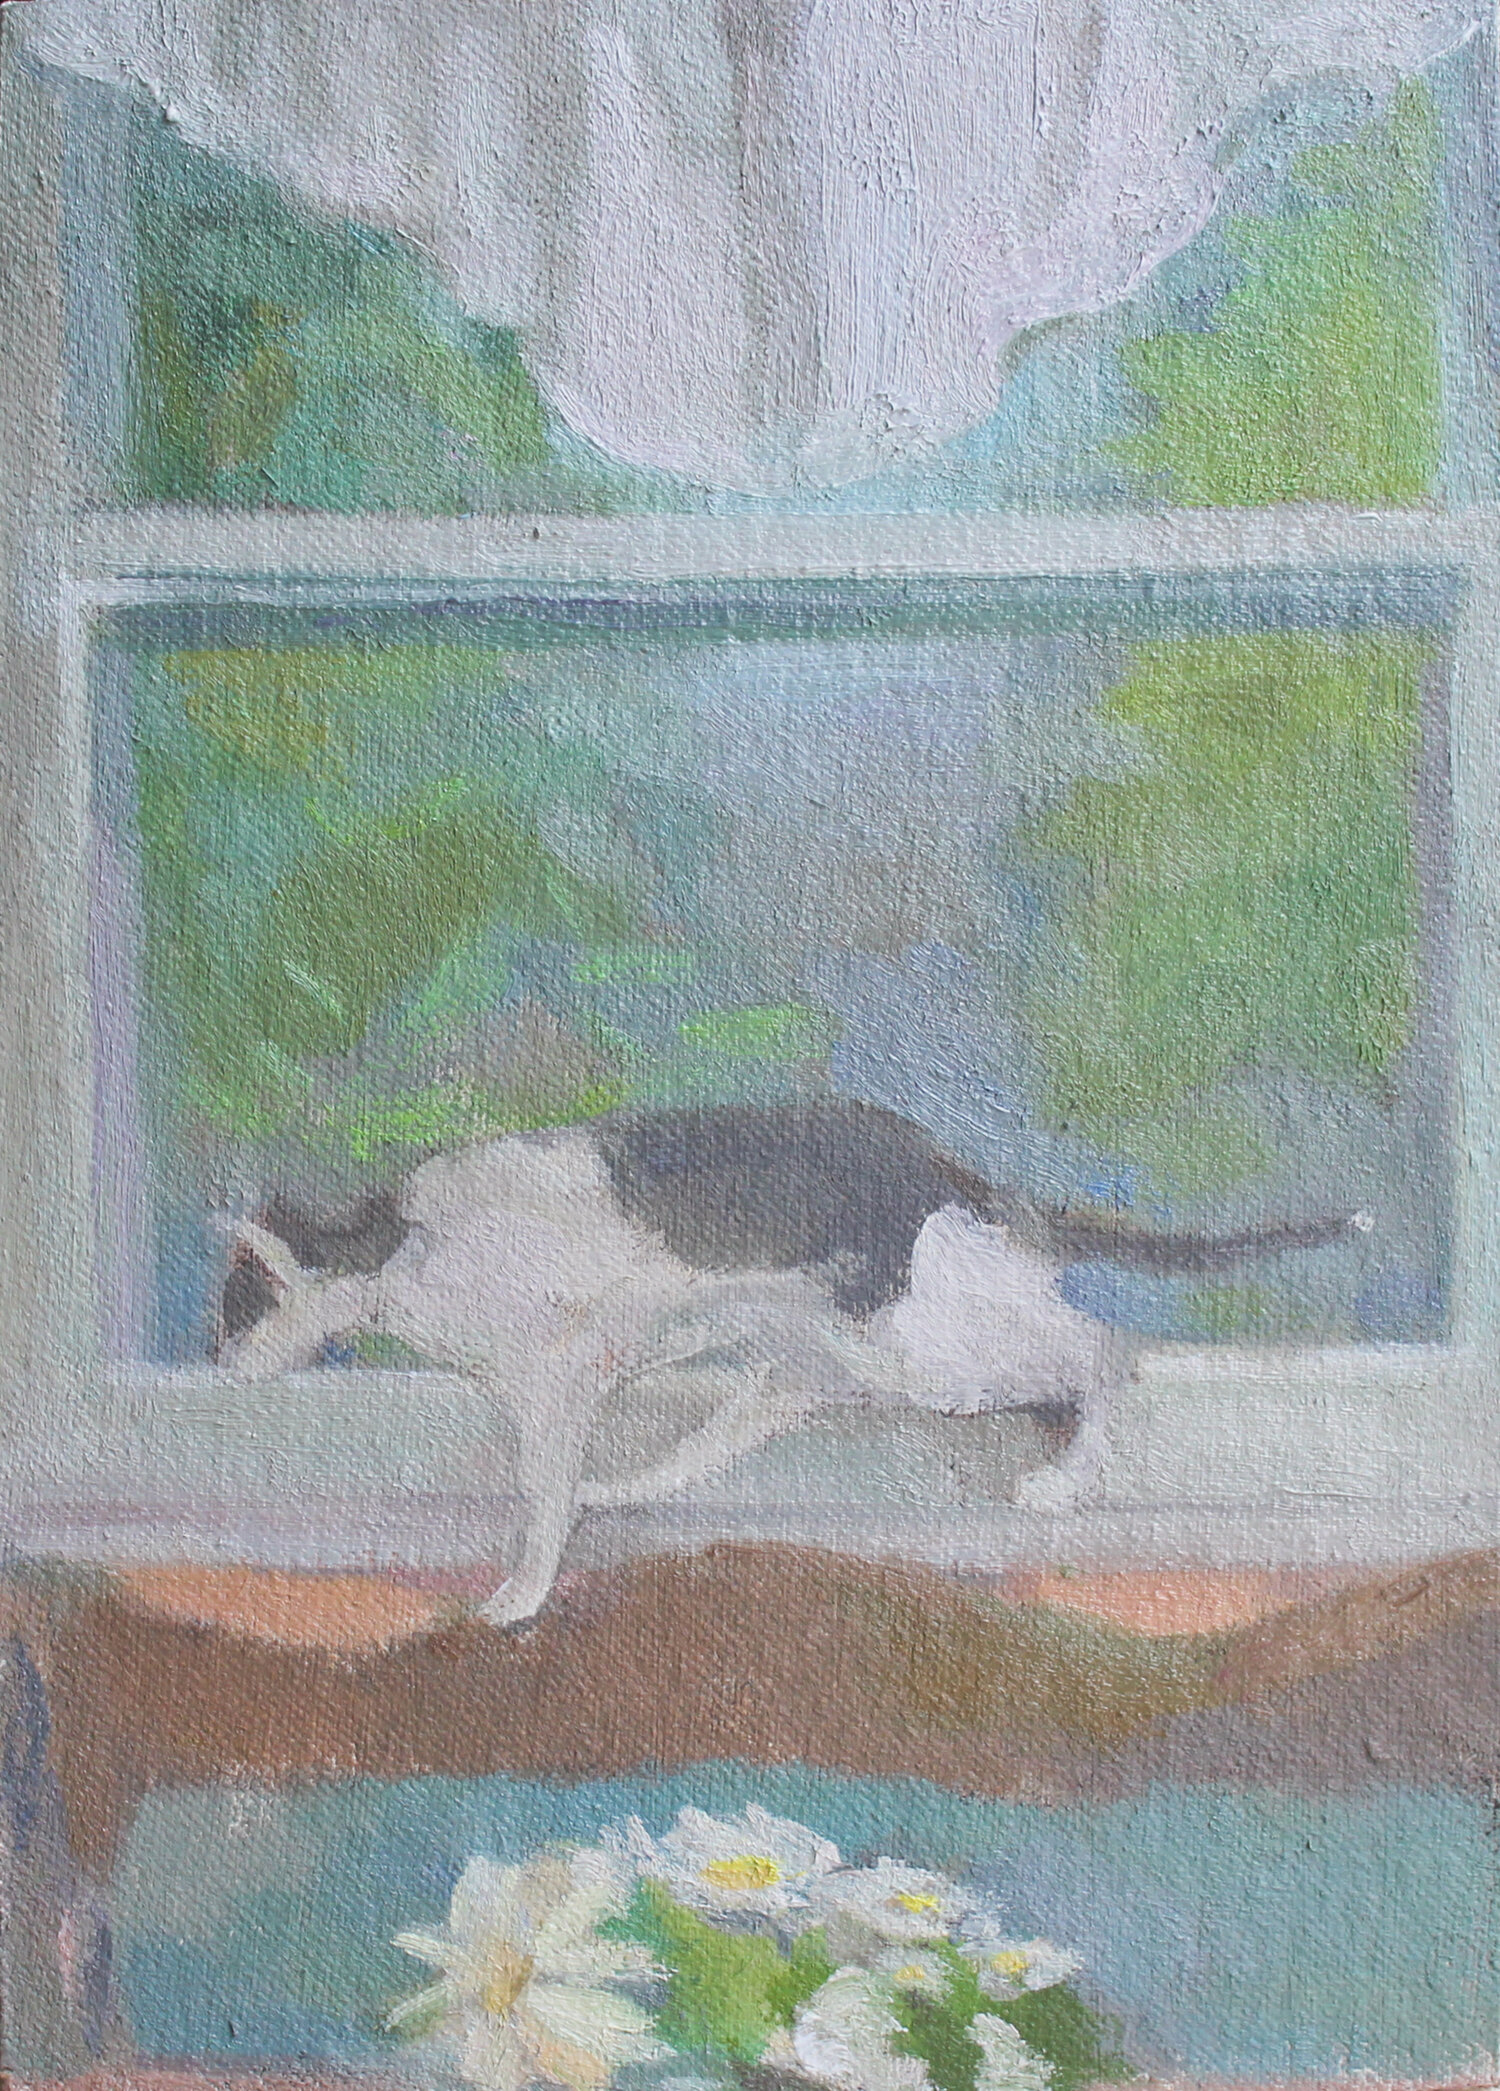 """Window View with Jacques, Daisies, and Valance  6 x 8.25"""" oil on mounted canvas 2019   purchase"""